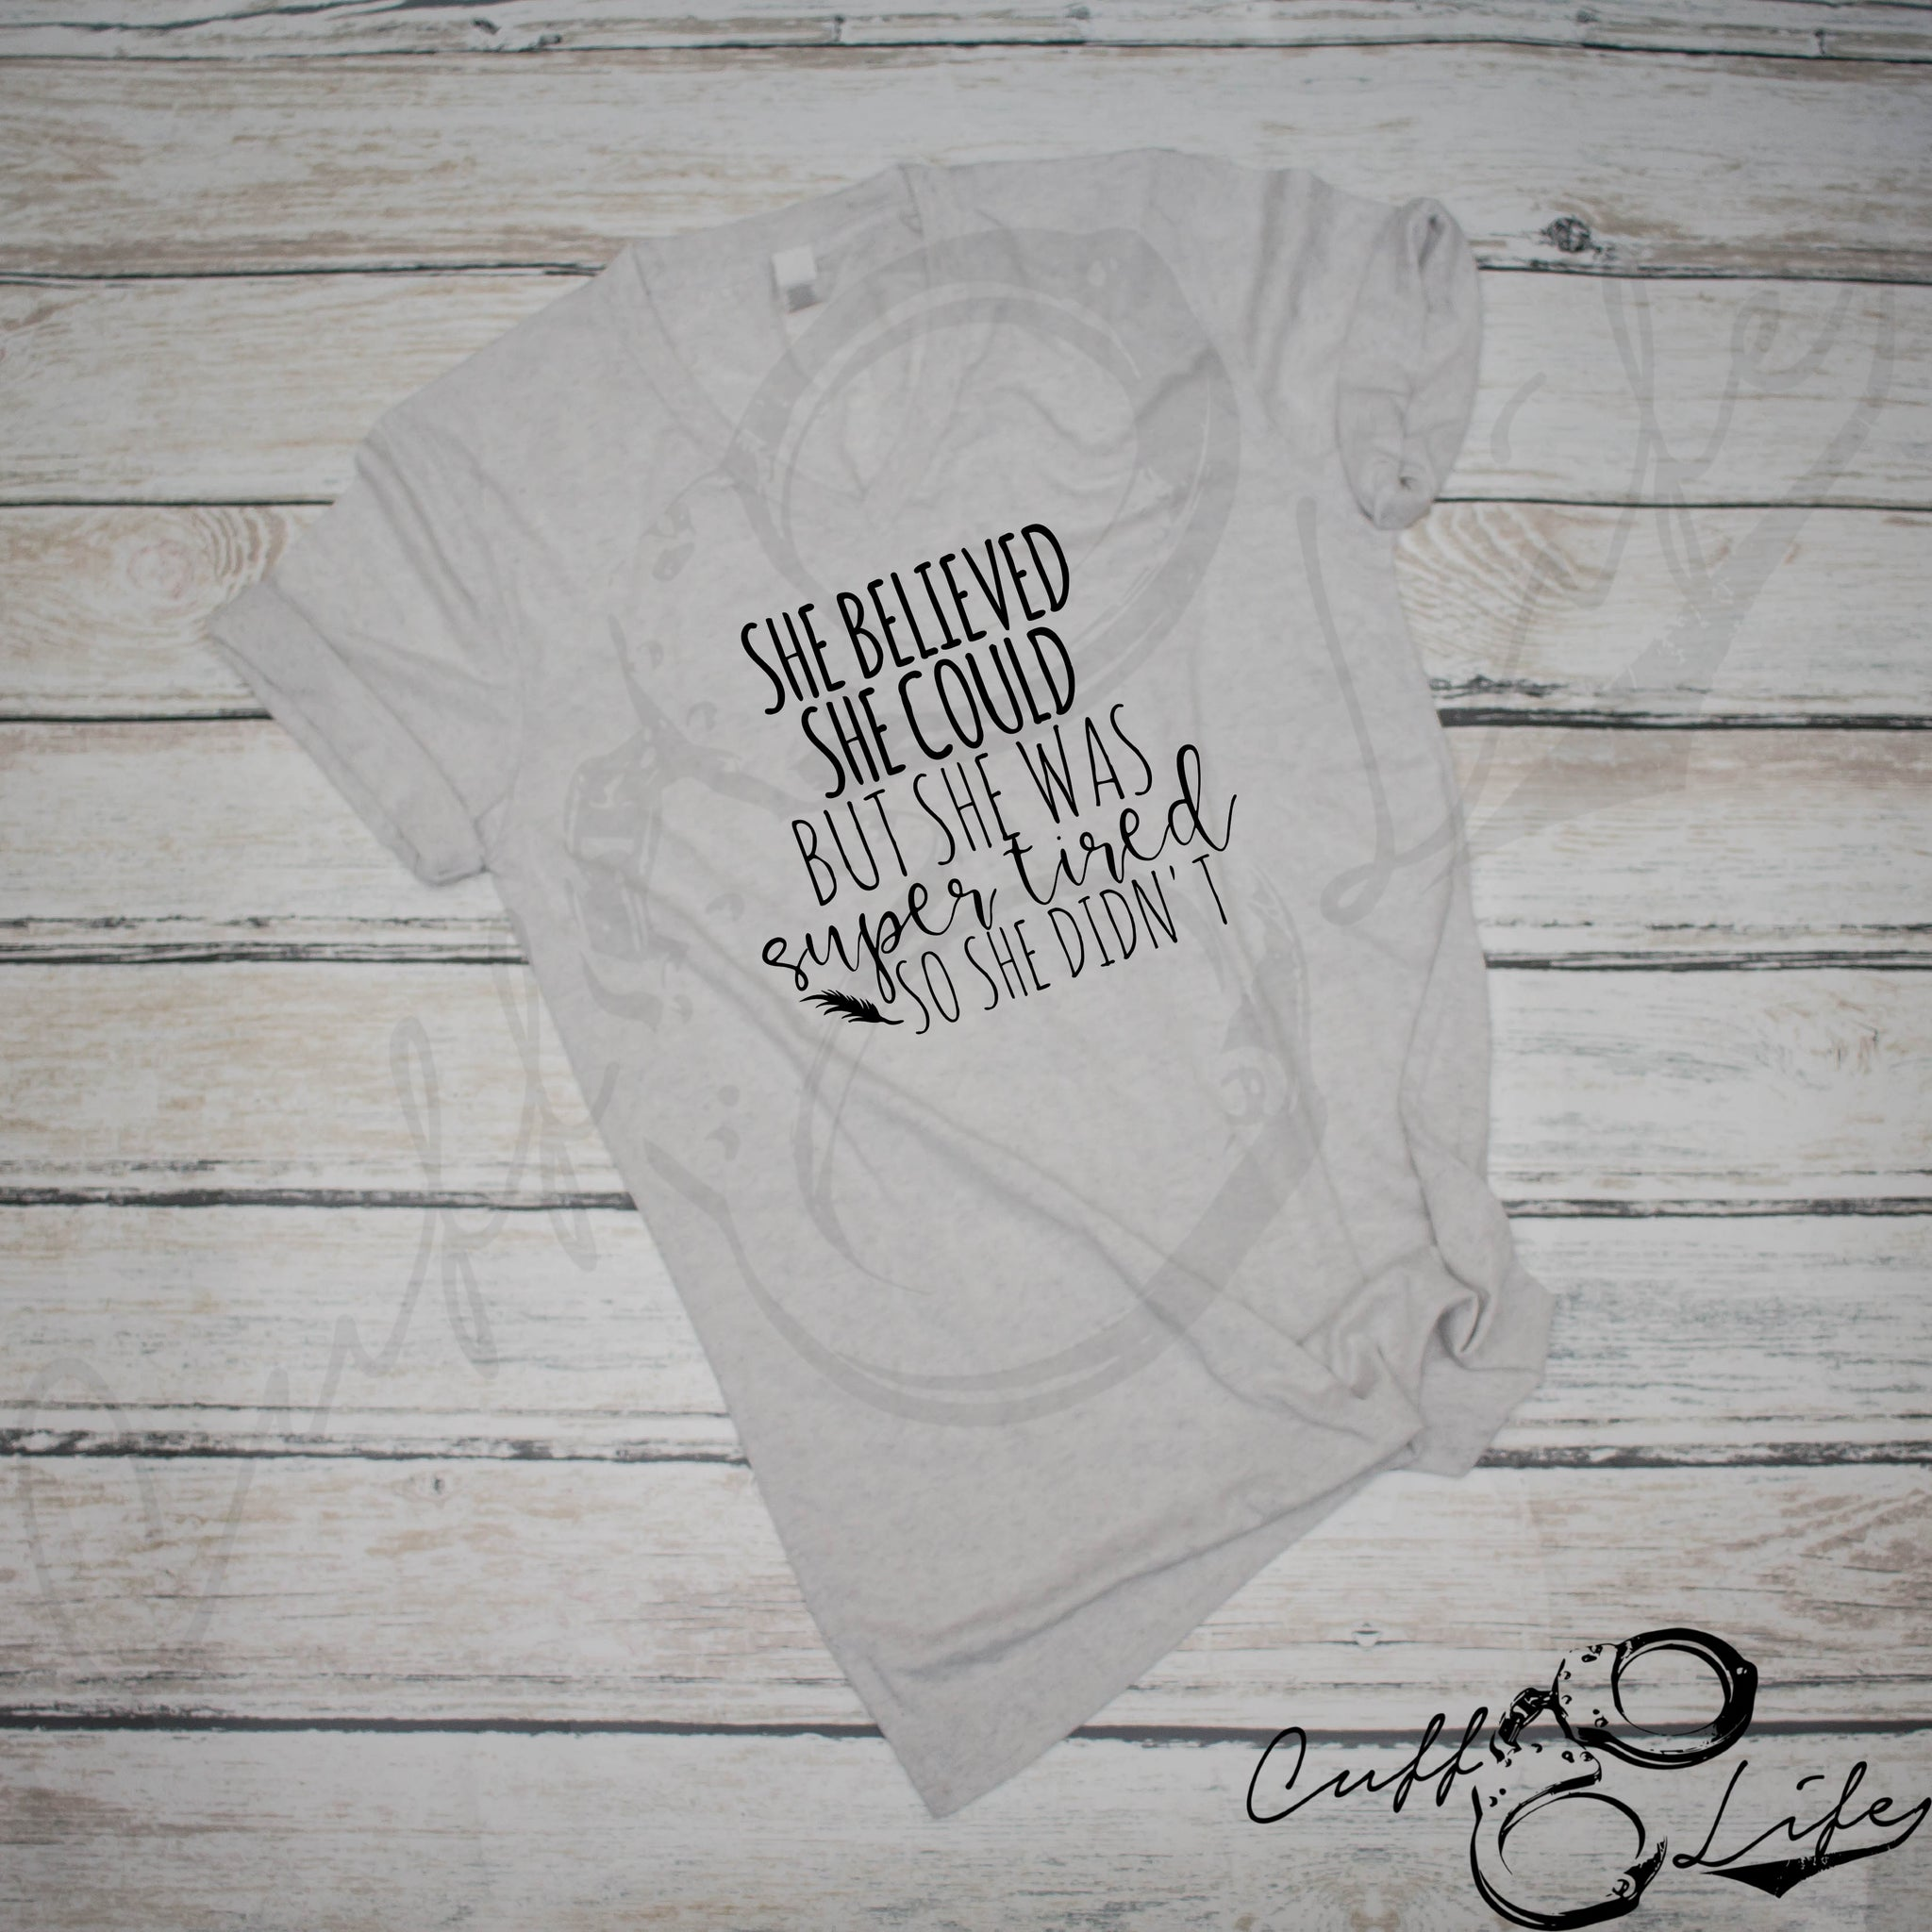 She Believed She Could, But She Was Super Tired - Boyfriend Fit V-Neck Tee